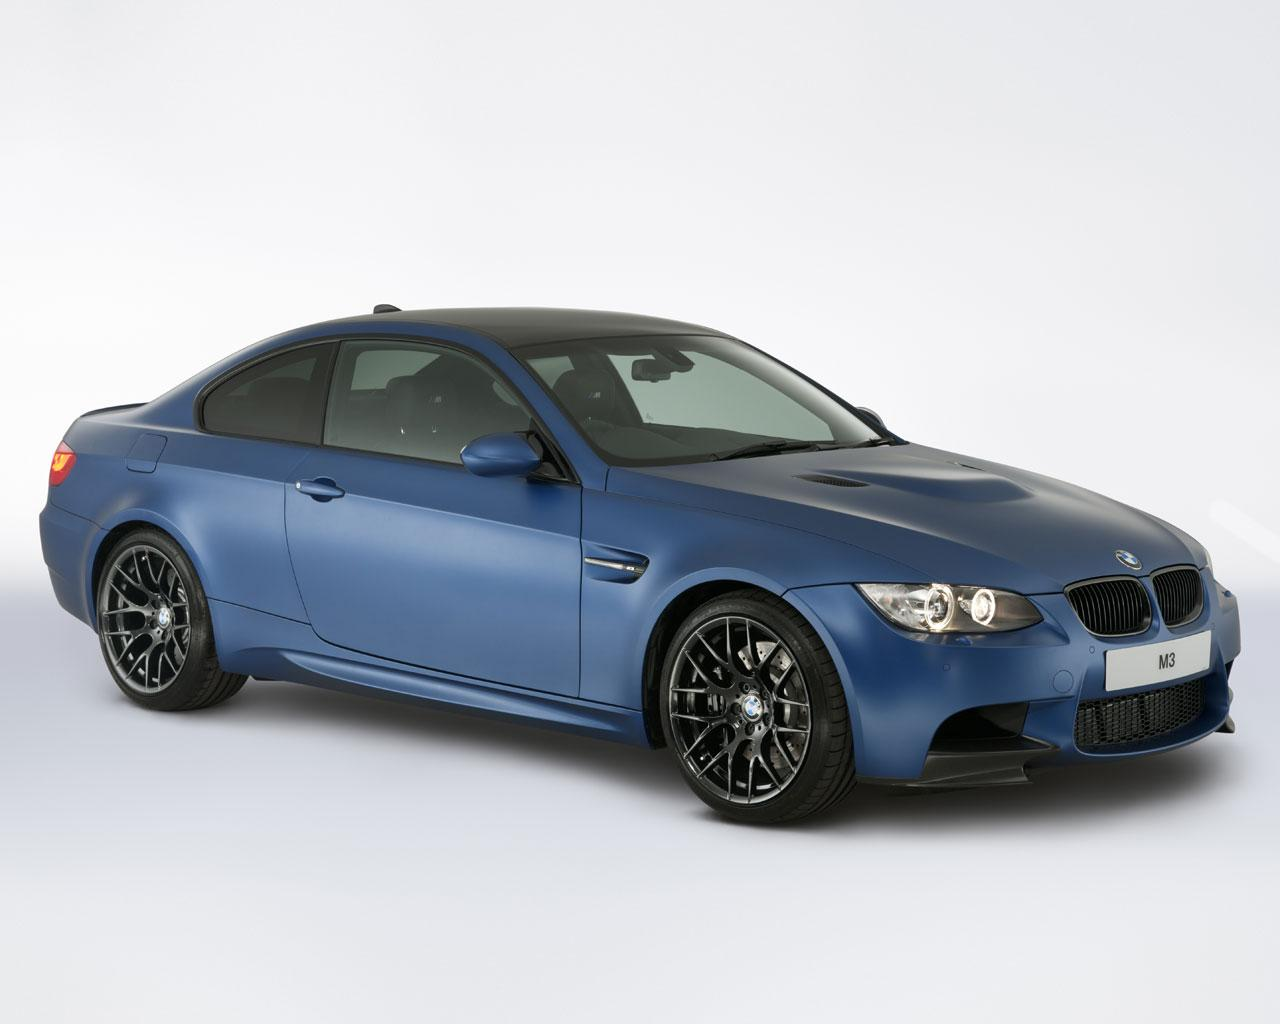 2012 bmw m3 m performance edition details and pricing. Black Bedroom Furniture Sets. Home Design Ideas